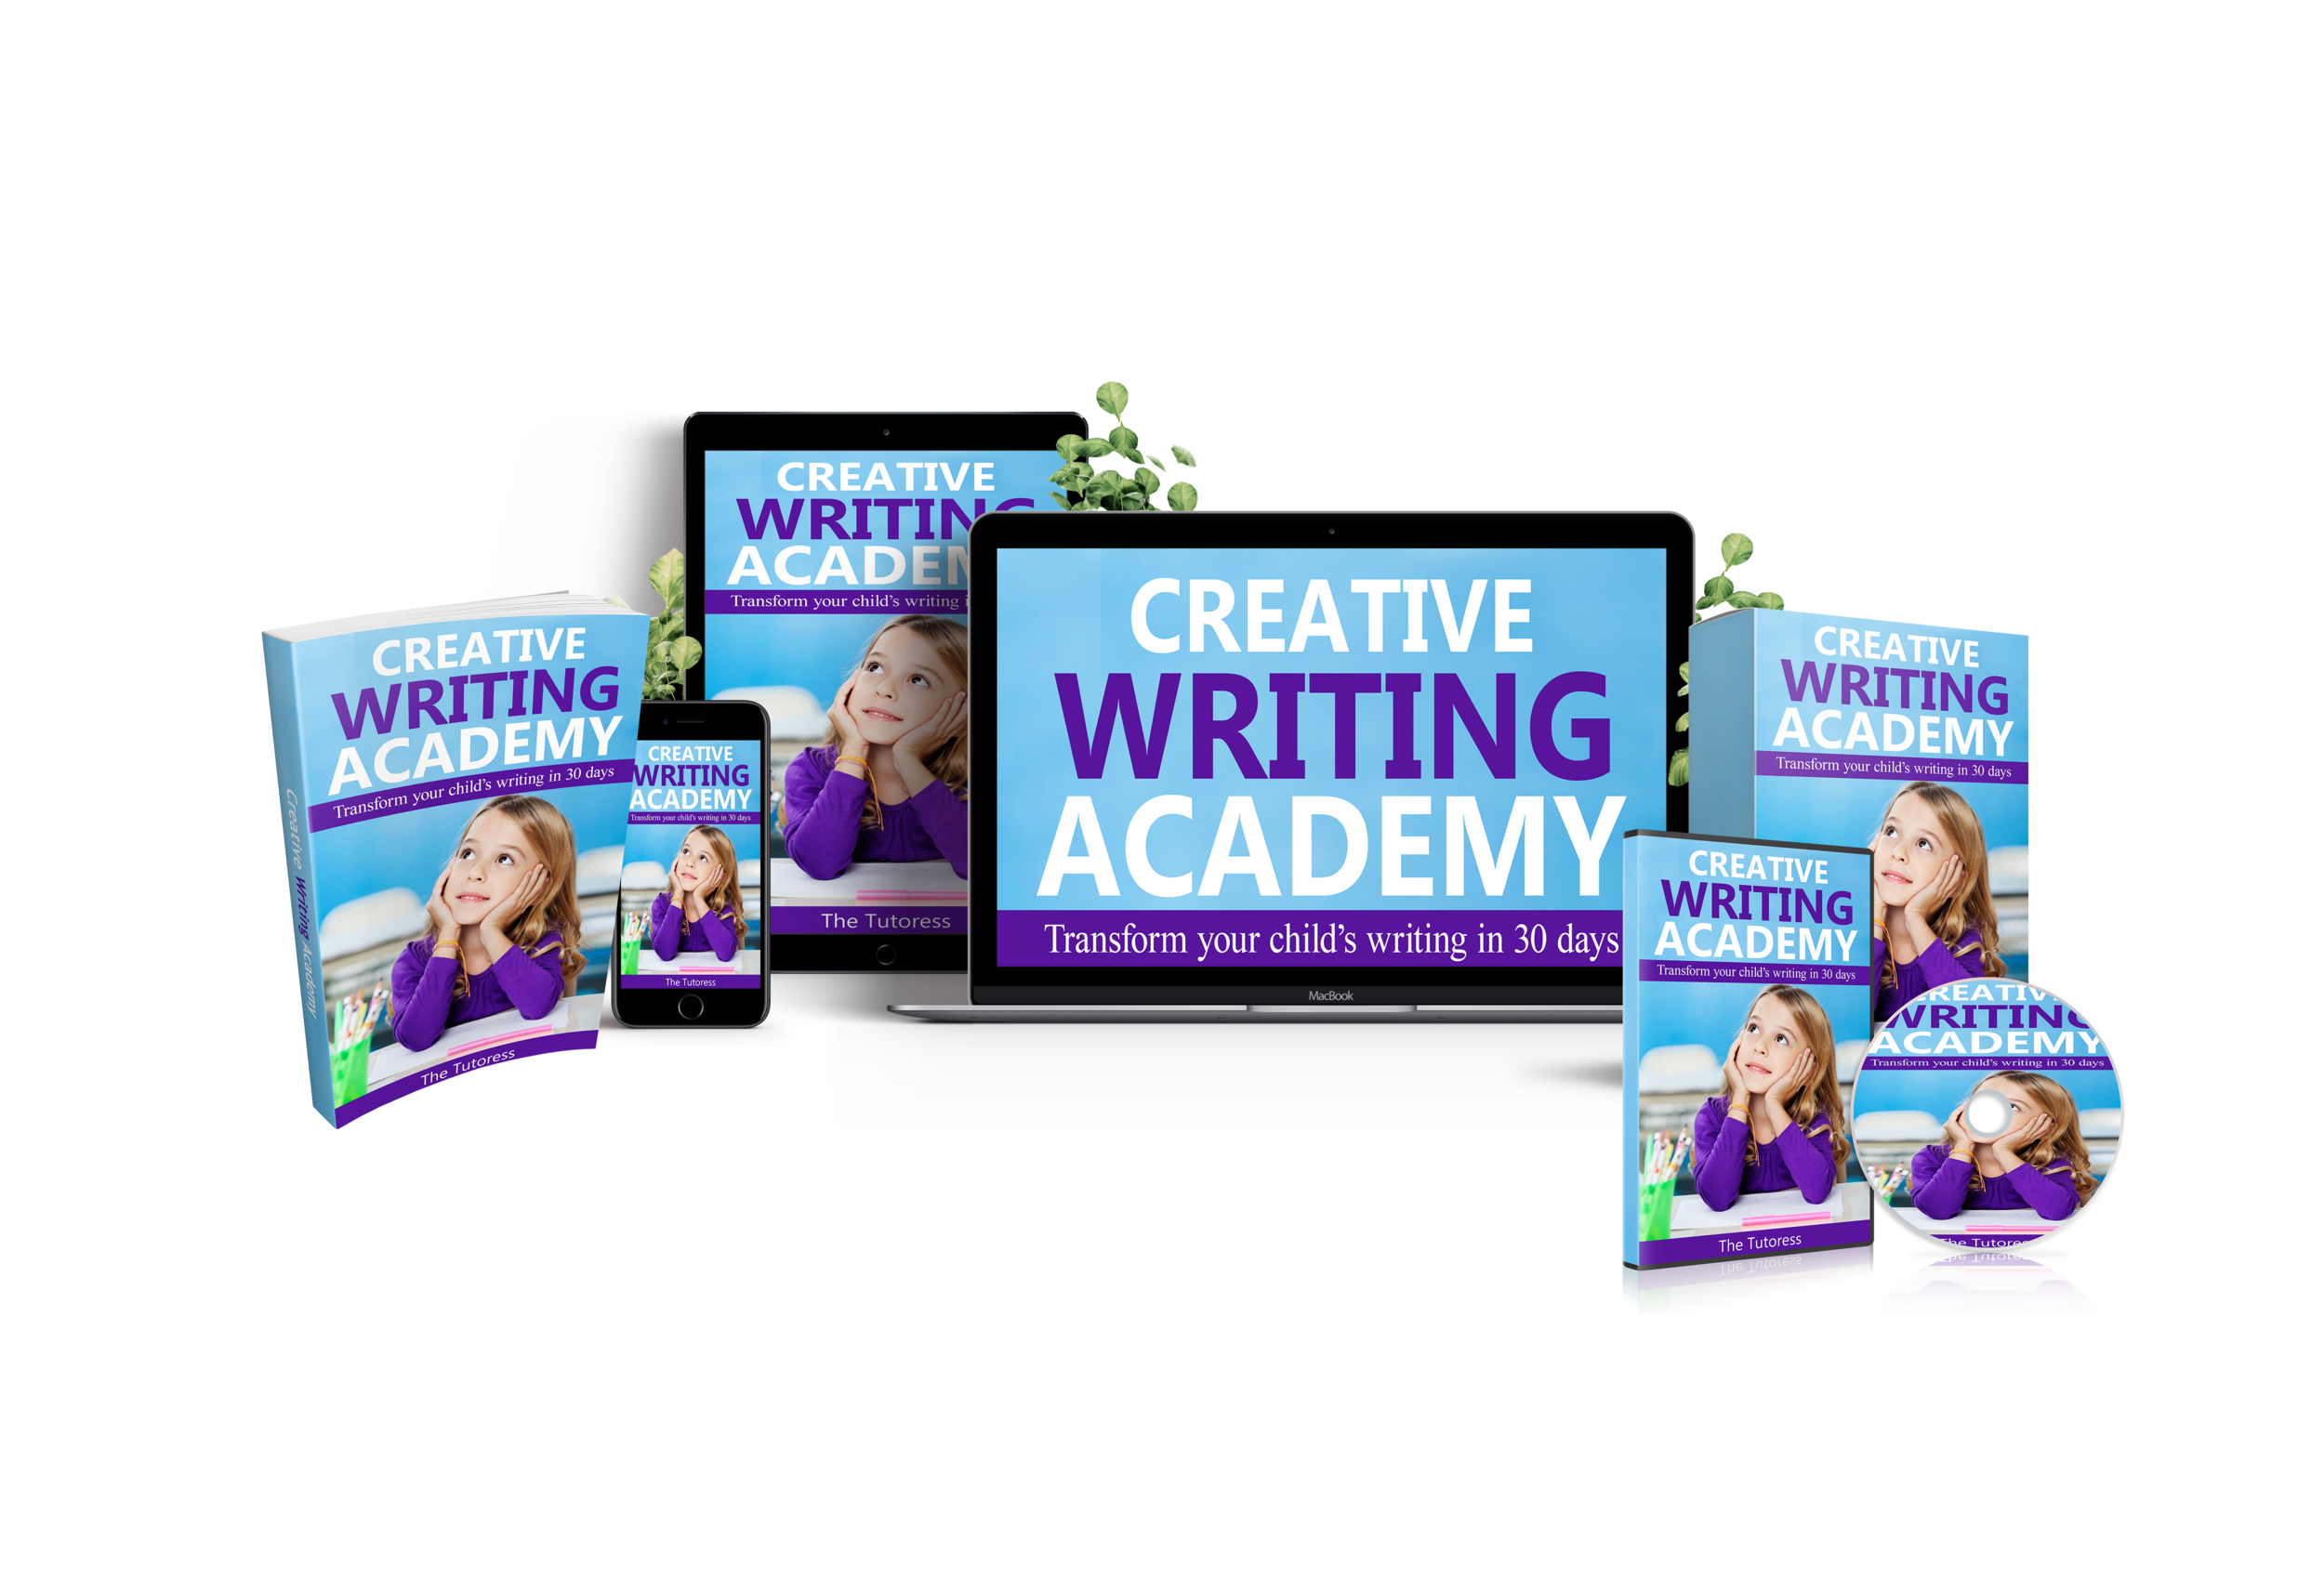 creative writing academy